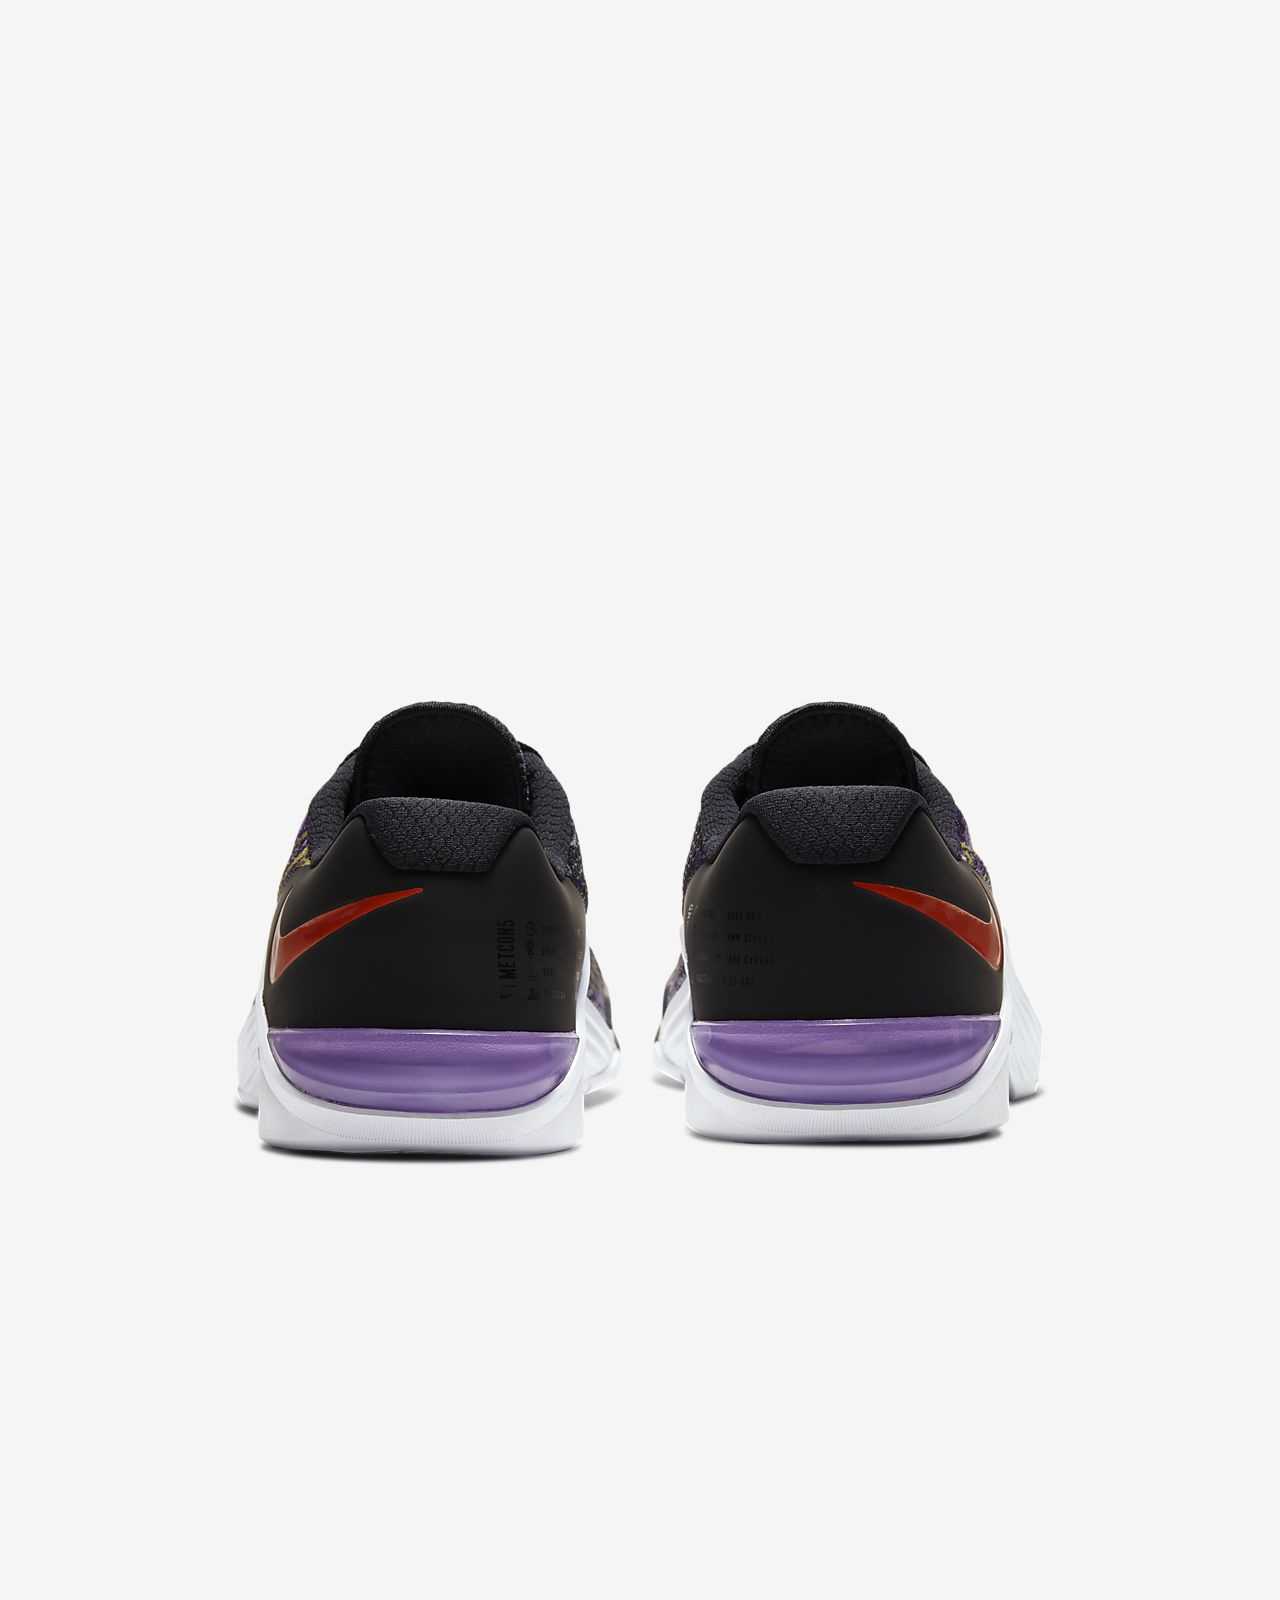 Dual Fusion TR Hit PRNT Nike Women's athletic shoes made